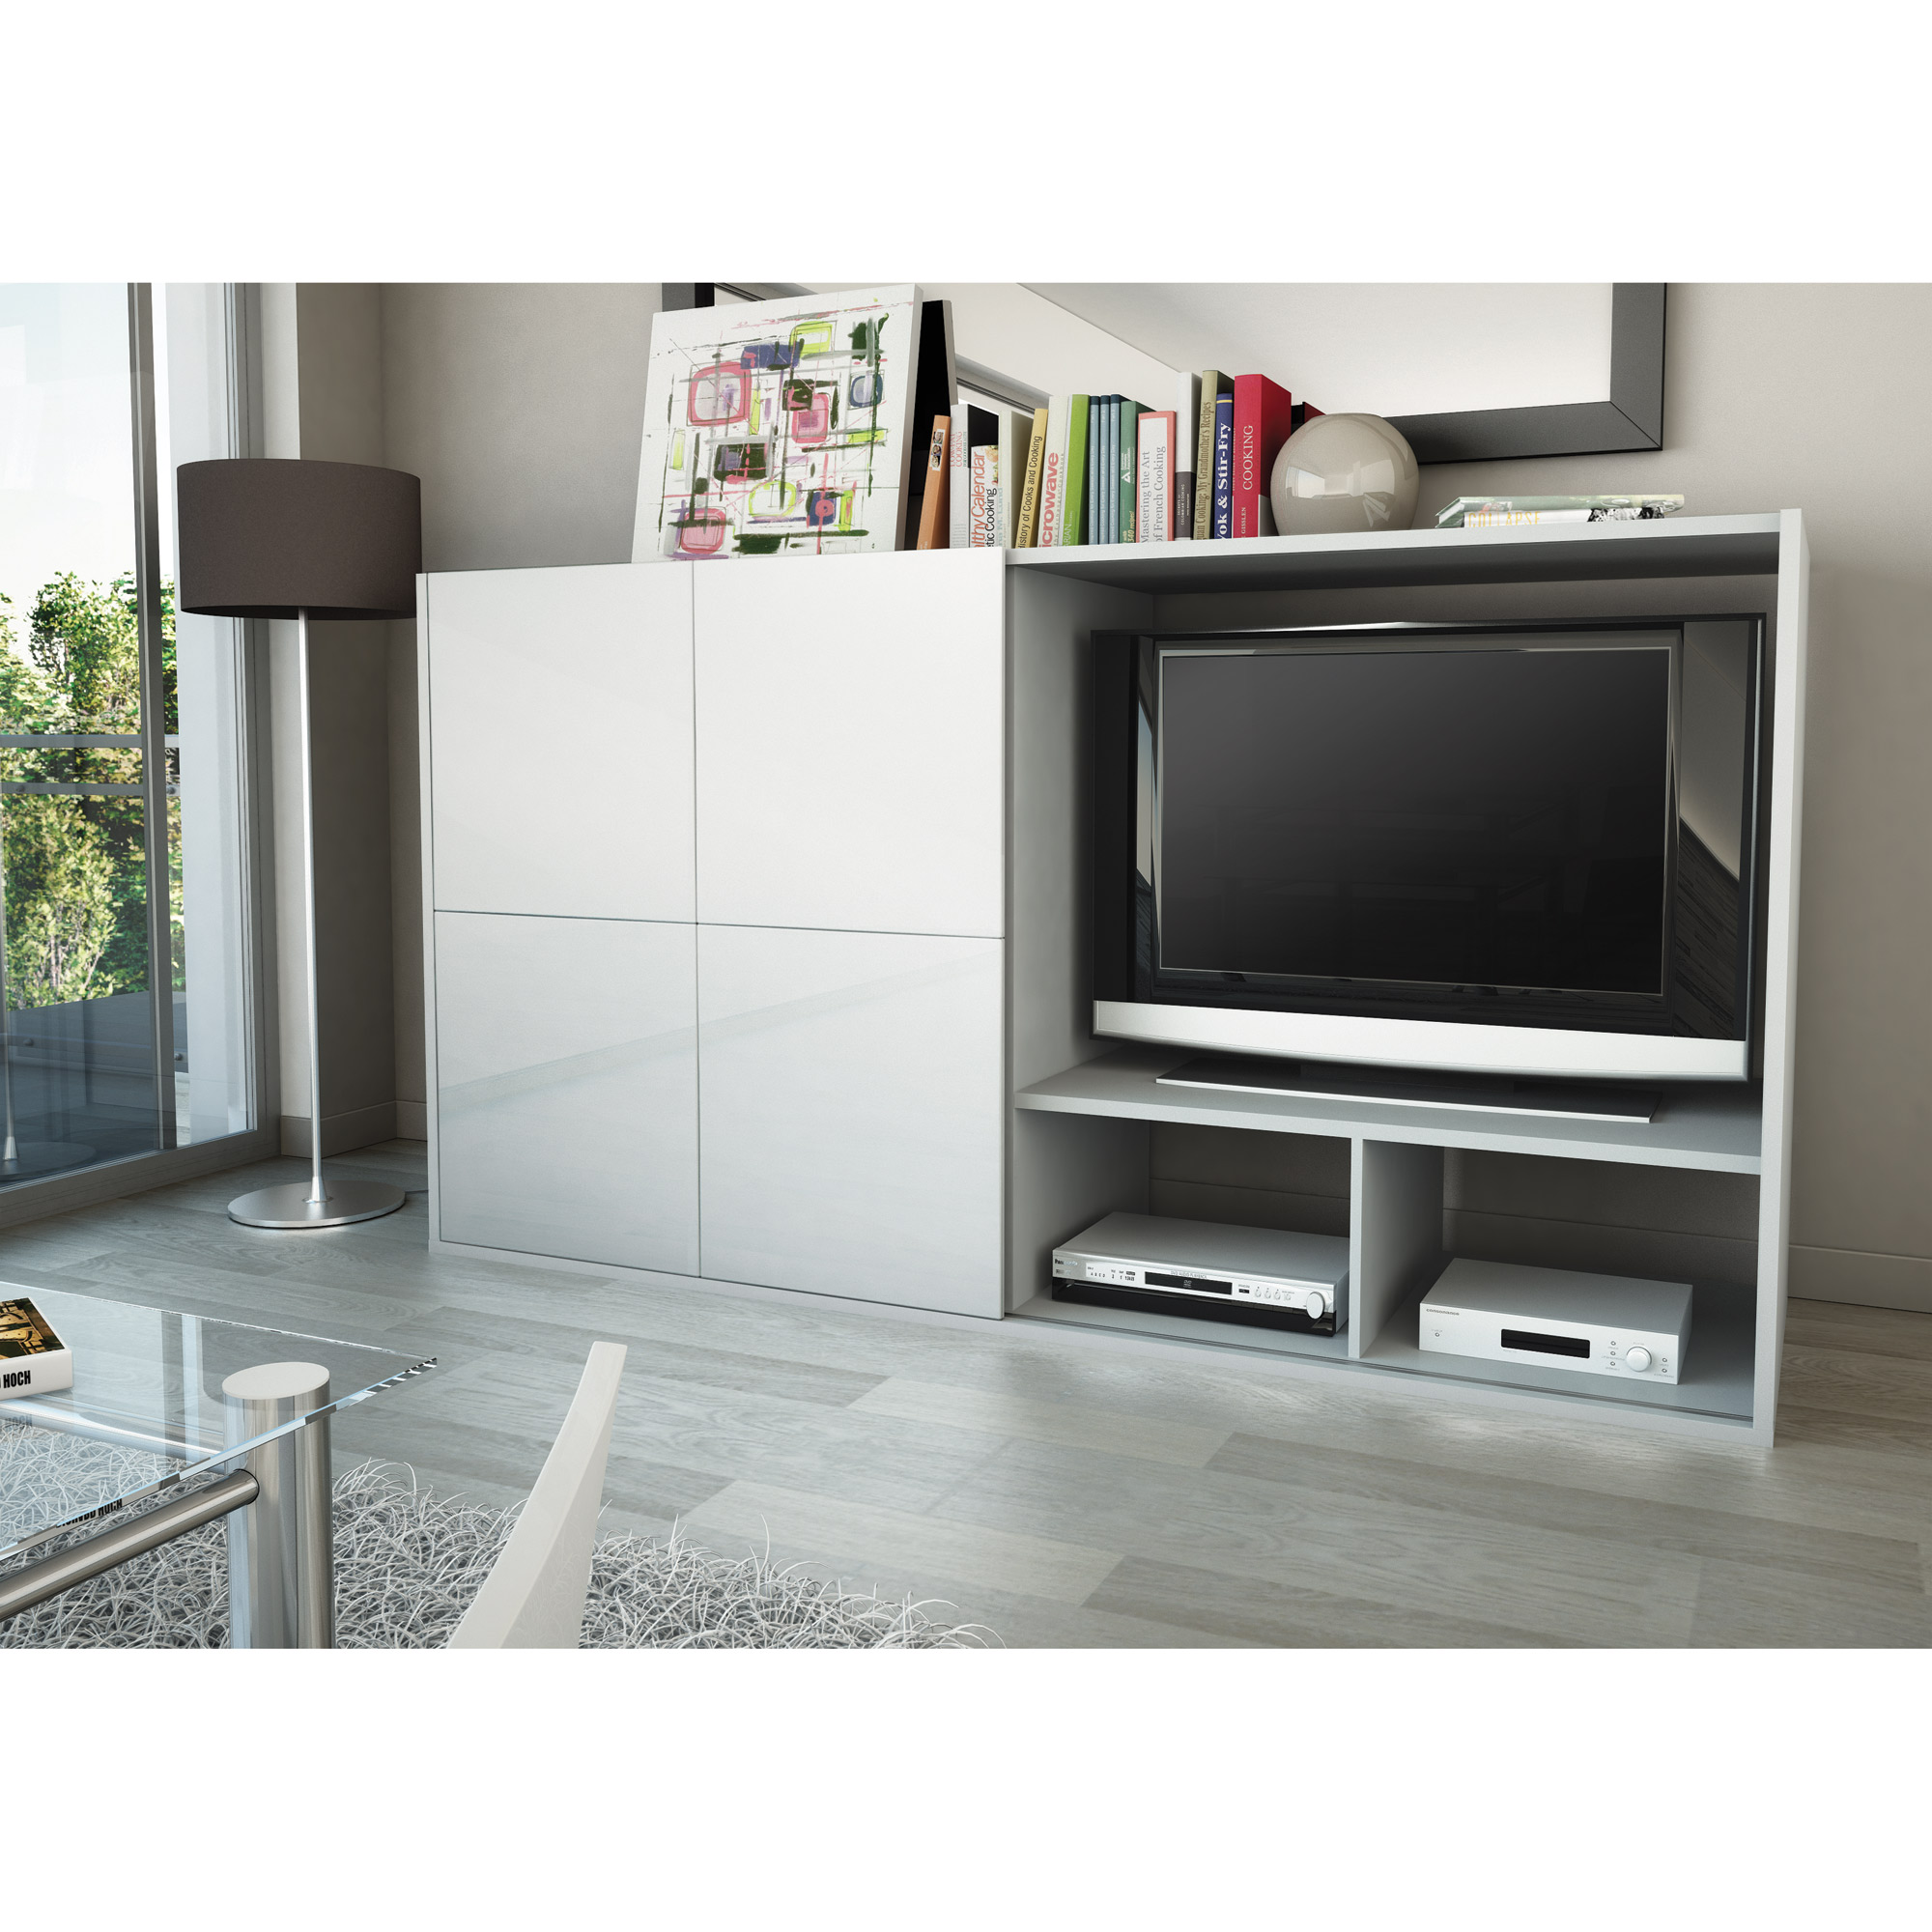 Meuble Tv Qui Cache La Tv - Meuble Tv Qui Cache La Tv Royal Sofa Id E De Canap Et Meuble [mjhdah]http://www.royalsofa.fr/wp-content/uploads/2017/09/tv-cachee-2.jpg